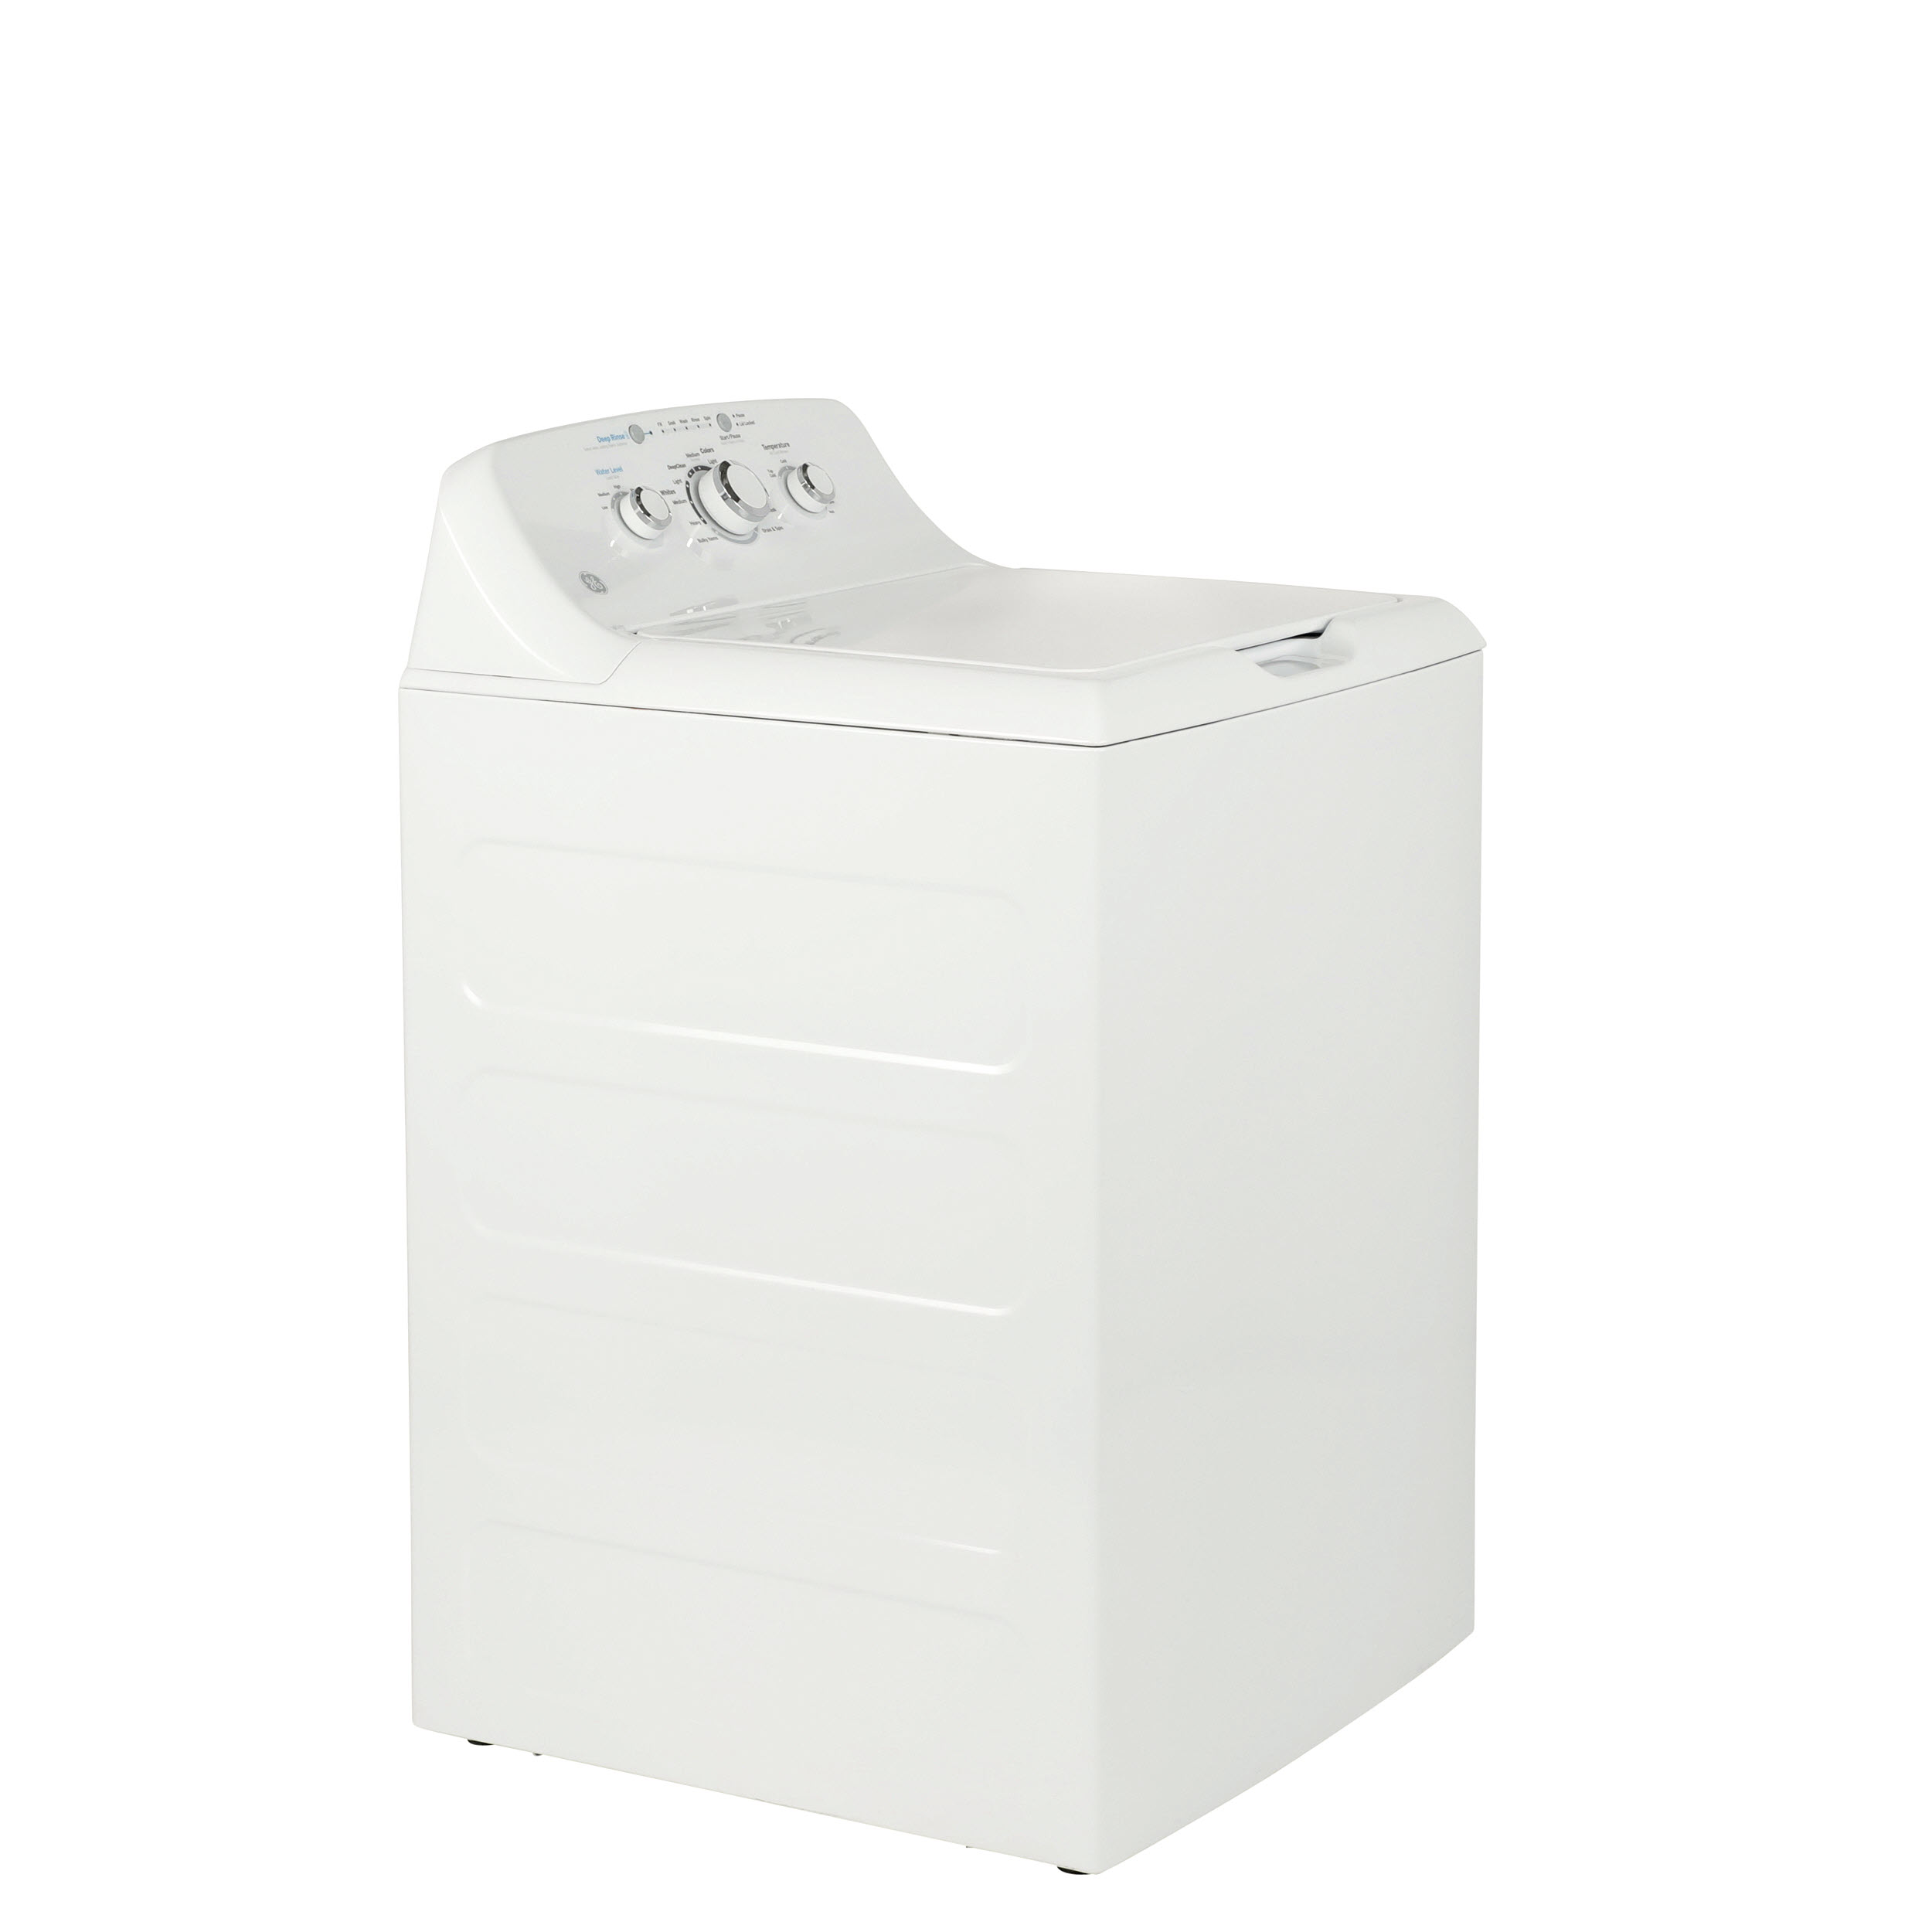 Model: GTW335ASNWW | GE GE® 4.2 cu. ft. Capacity Washer with Stainless Steel Basket